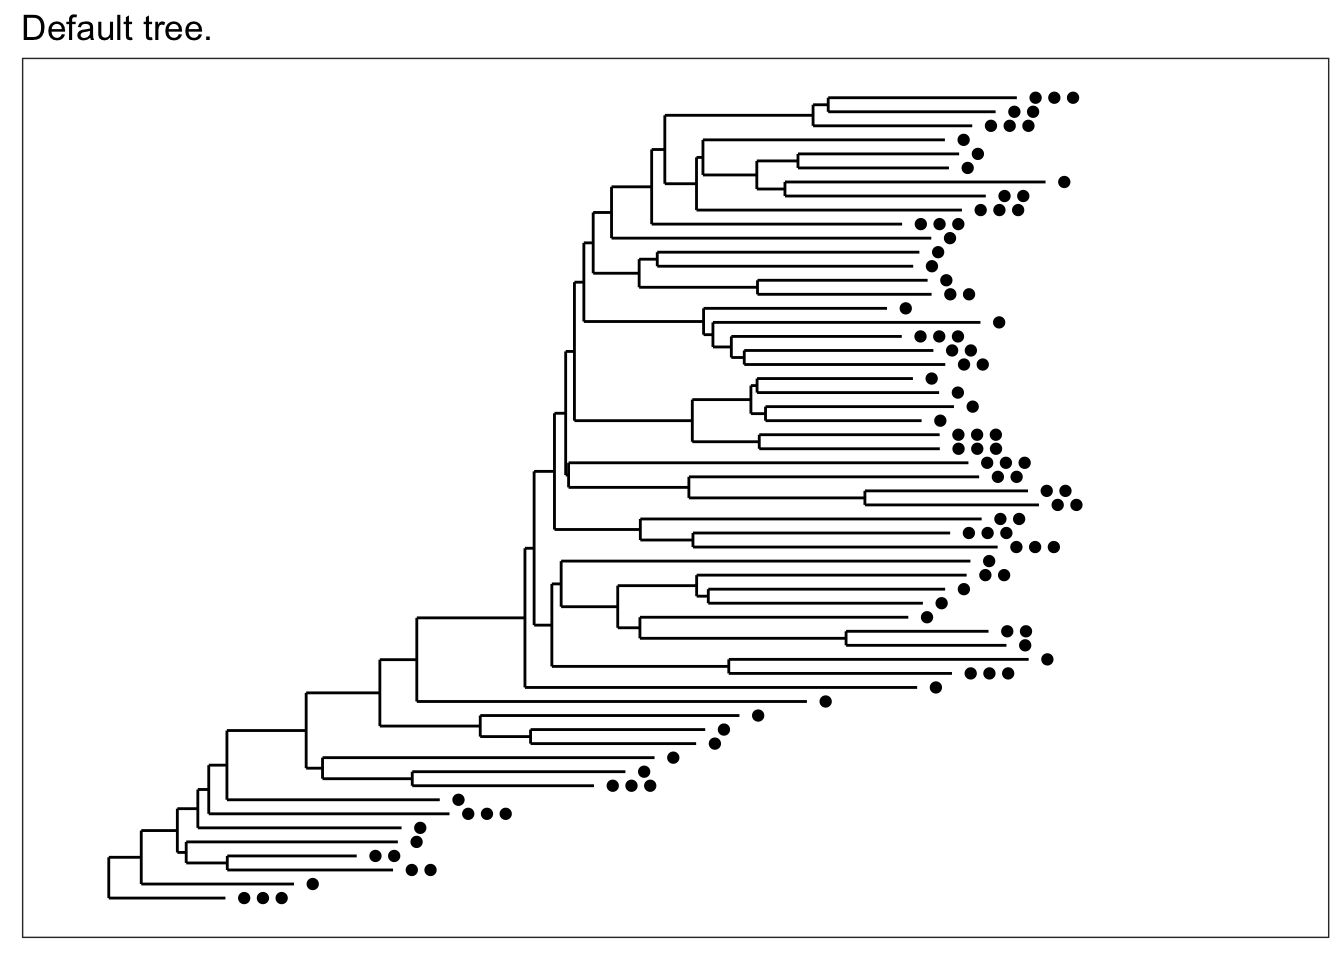 Powerful Tree Graphics With Ggplot2 How To Draw Up A Hierarchical Diagram For Taxonomic If Some Reason You Just Want An Unadorned The Treeonly Method Can Be Selected This Tends Plot Much Faster Than Annotated